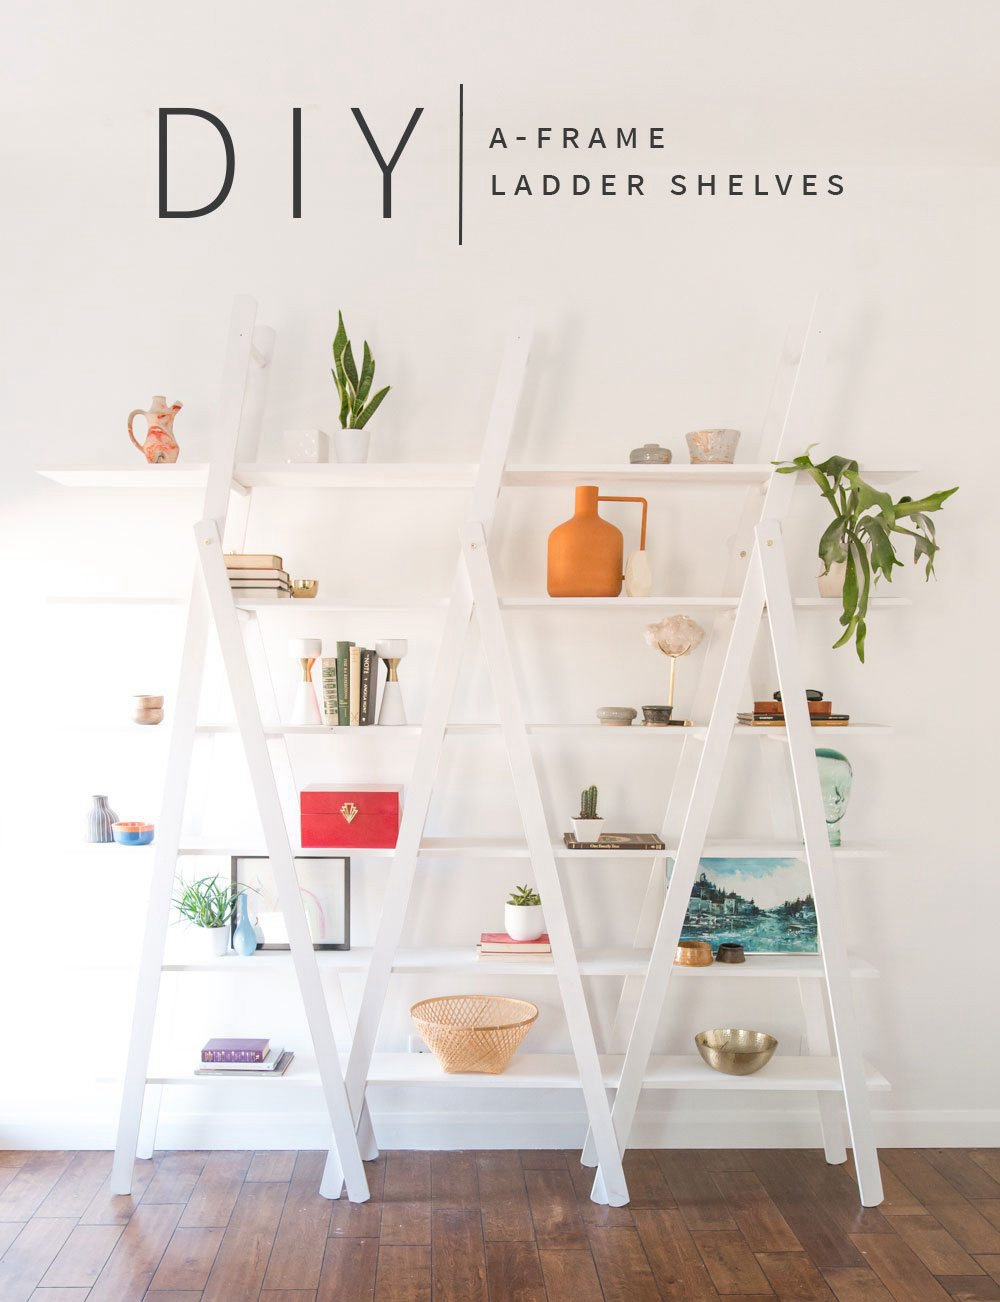 5. Kitchen A-shelf DIY